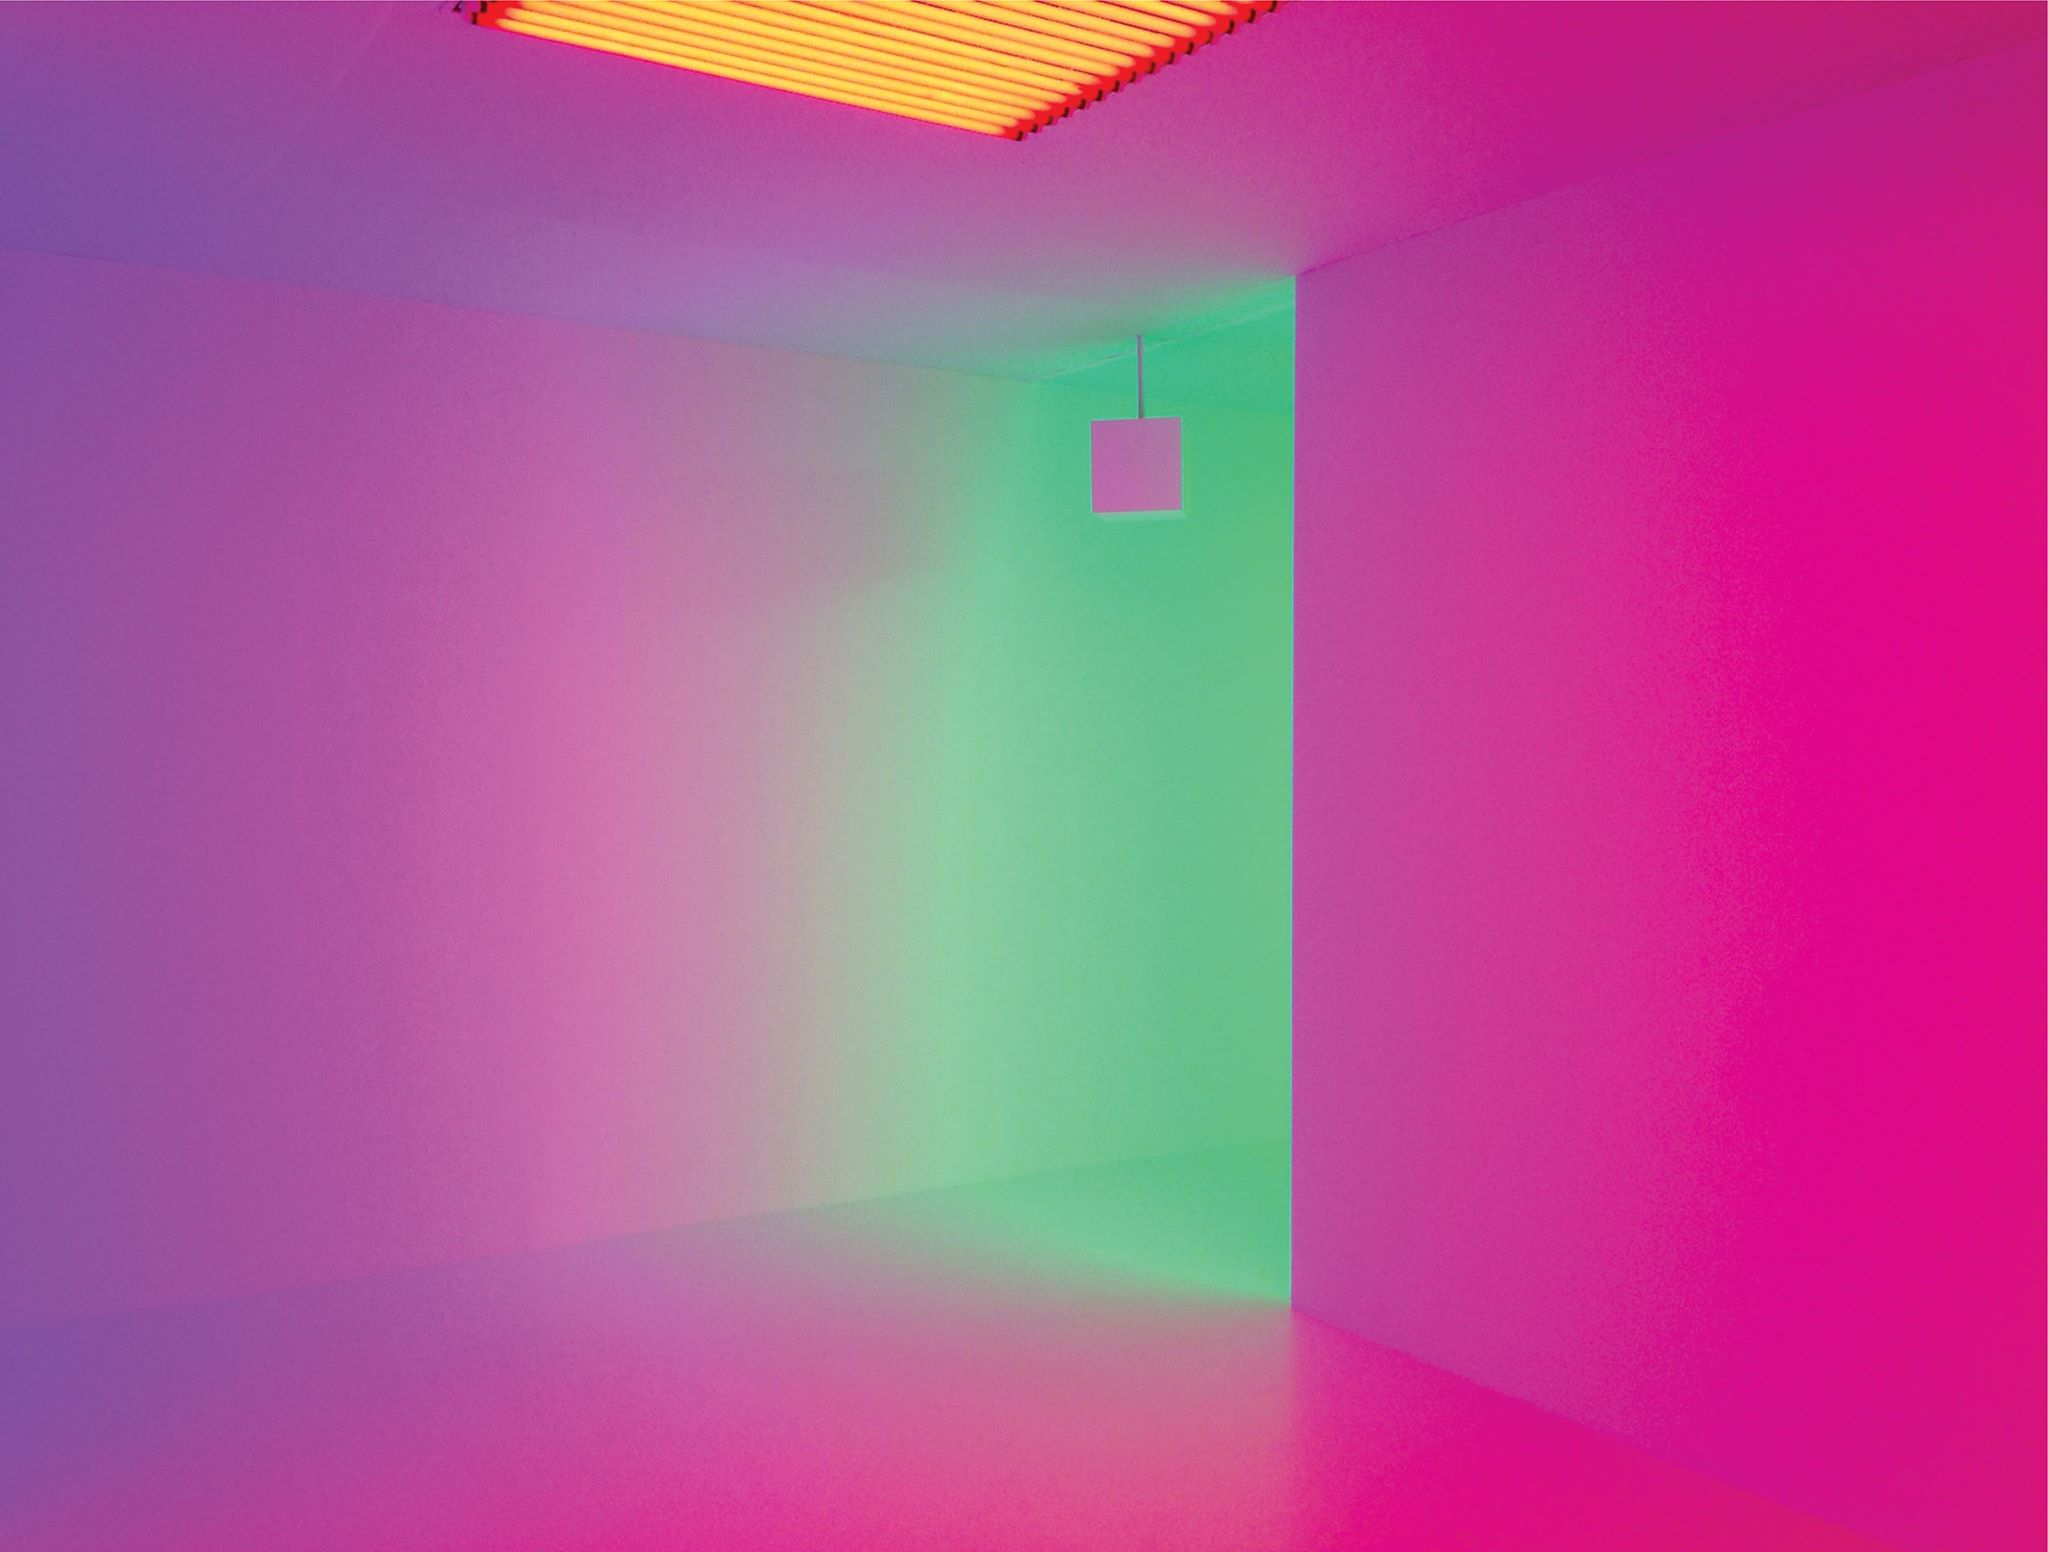 Chromosaturation de Carlos Cruz-Diez. LIGHTOPIA.